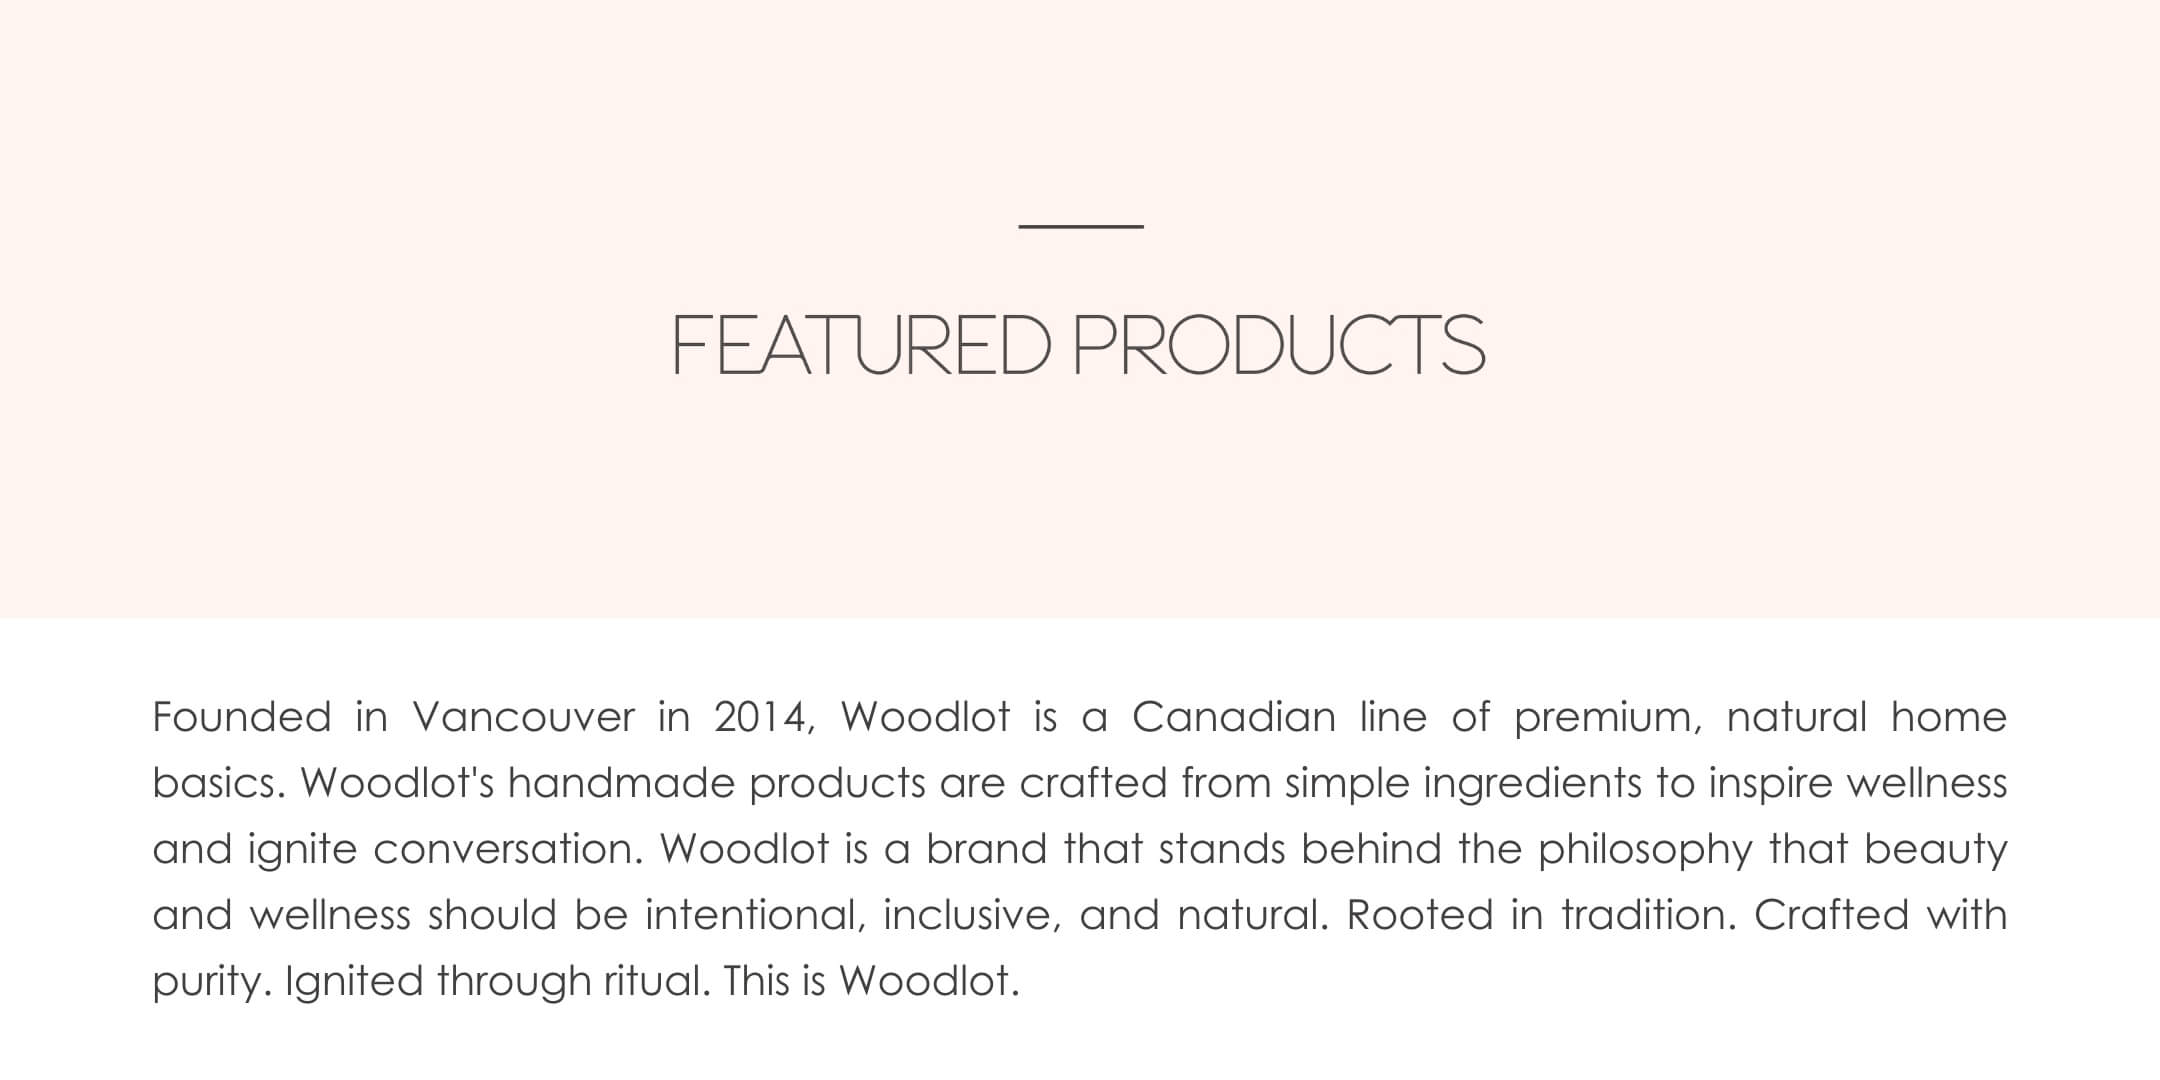 Featured Products from Woodlot